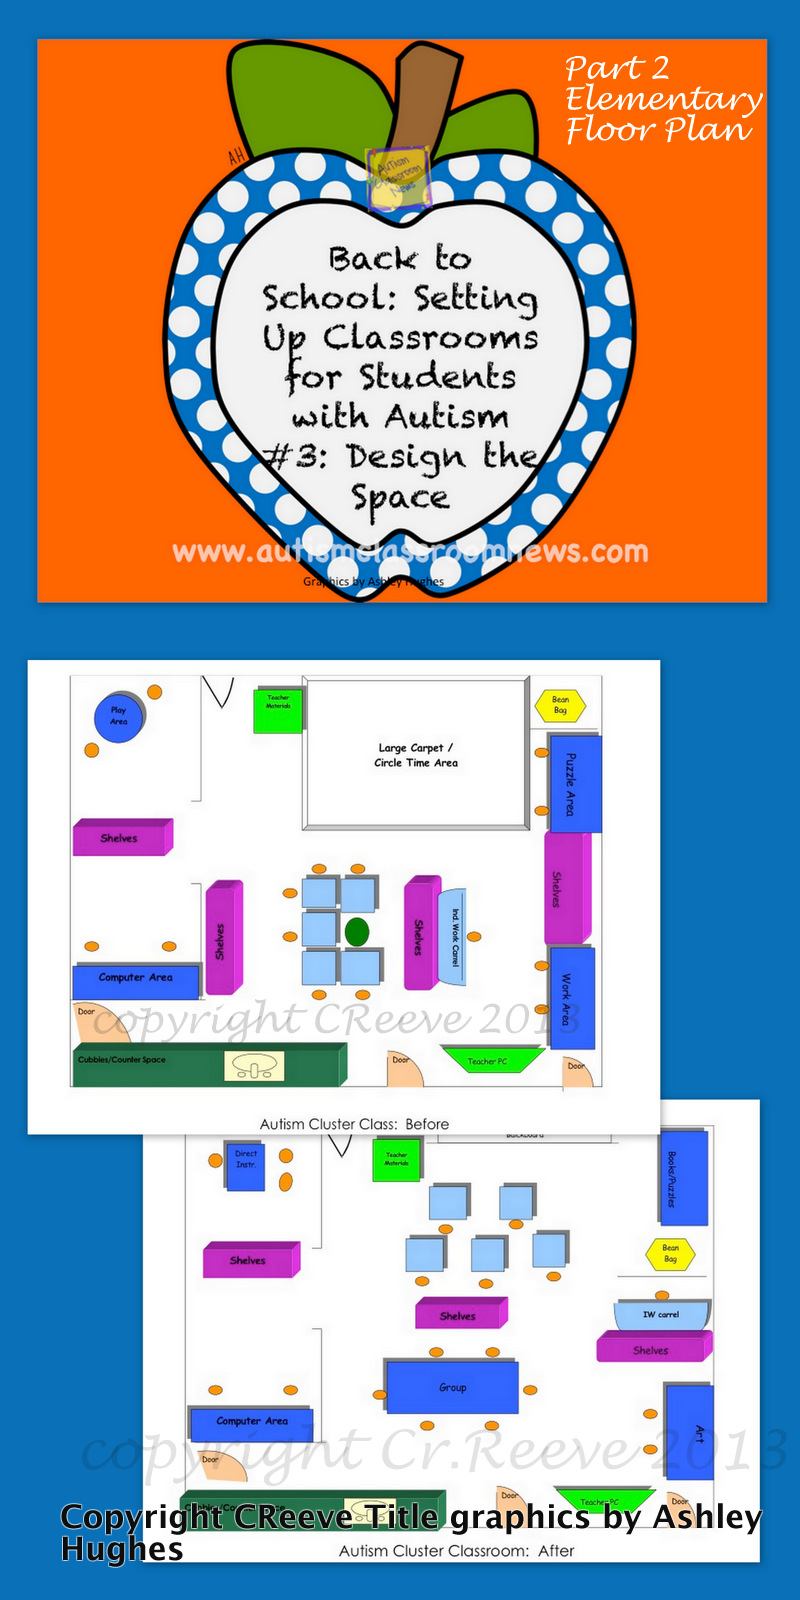 Classroom Design For Students With Autism : Autism classroom news back to school setting up